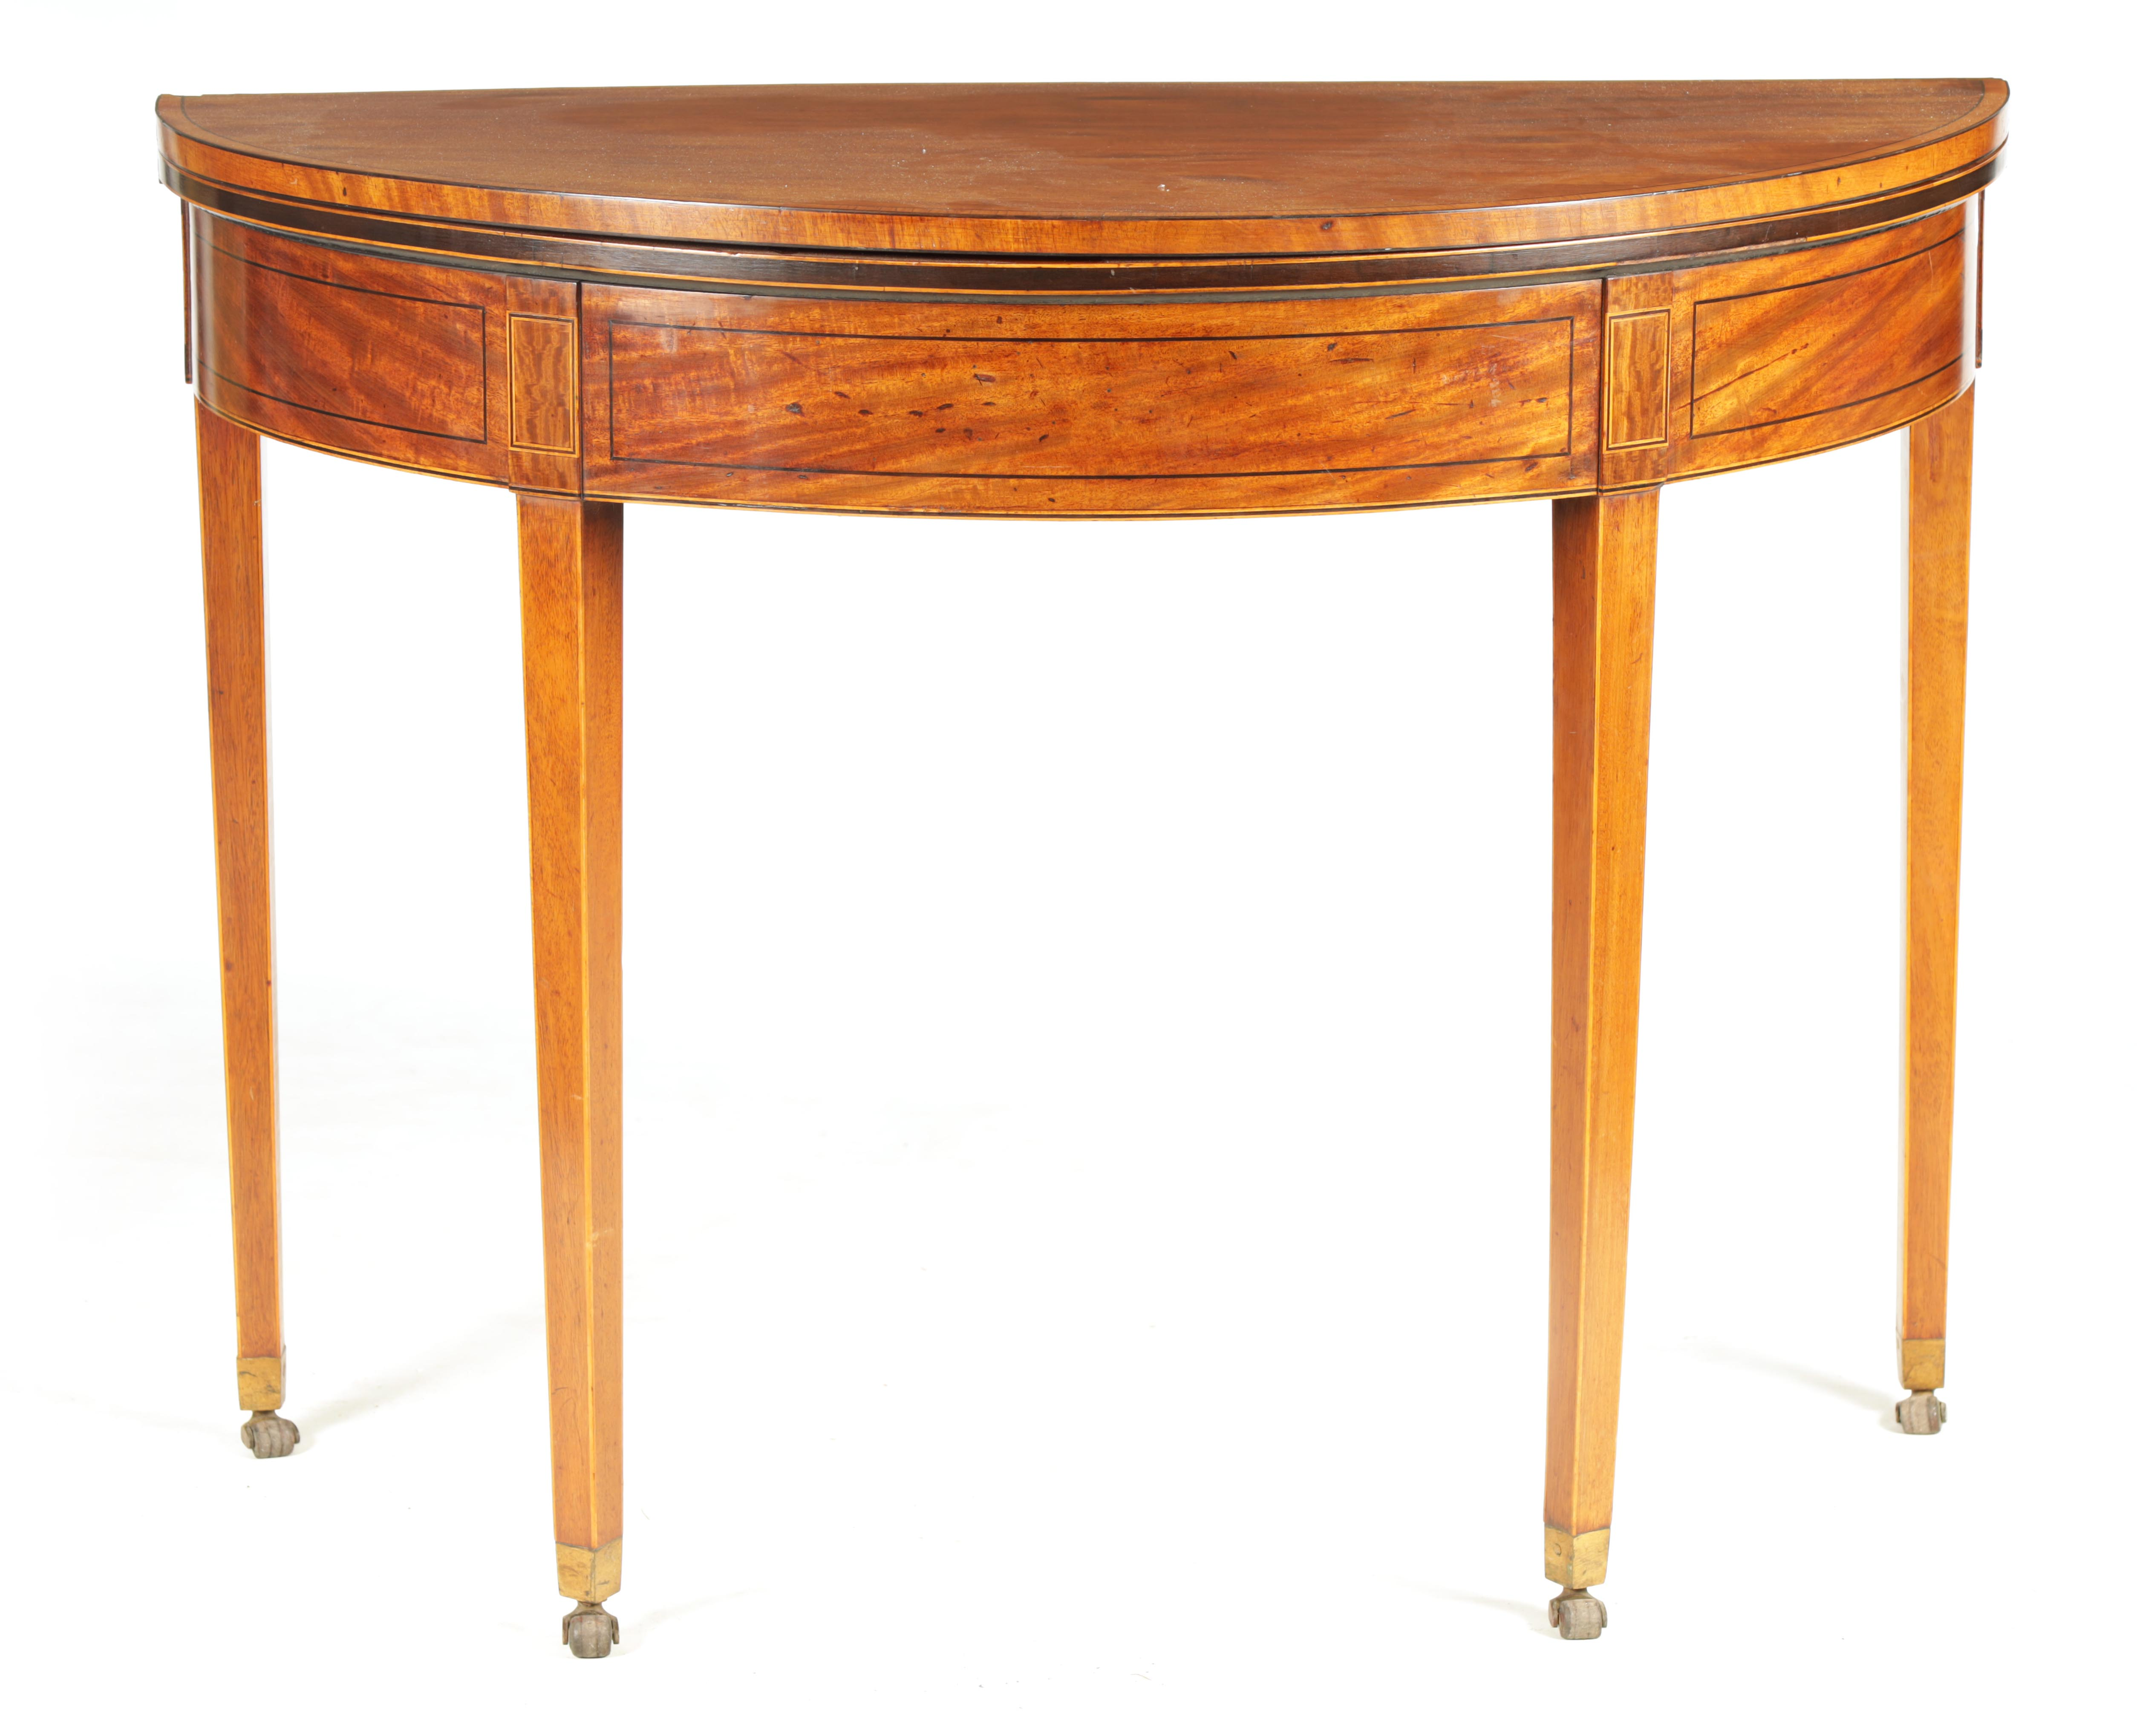 A GEORGE III FIGURED SATINWOOD D END TEA TABLE with hinged top and double gate rear legs; standing